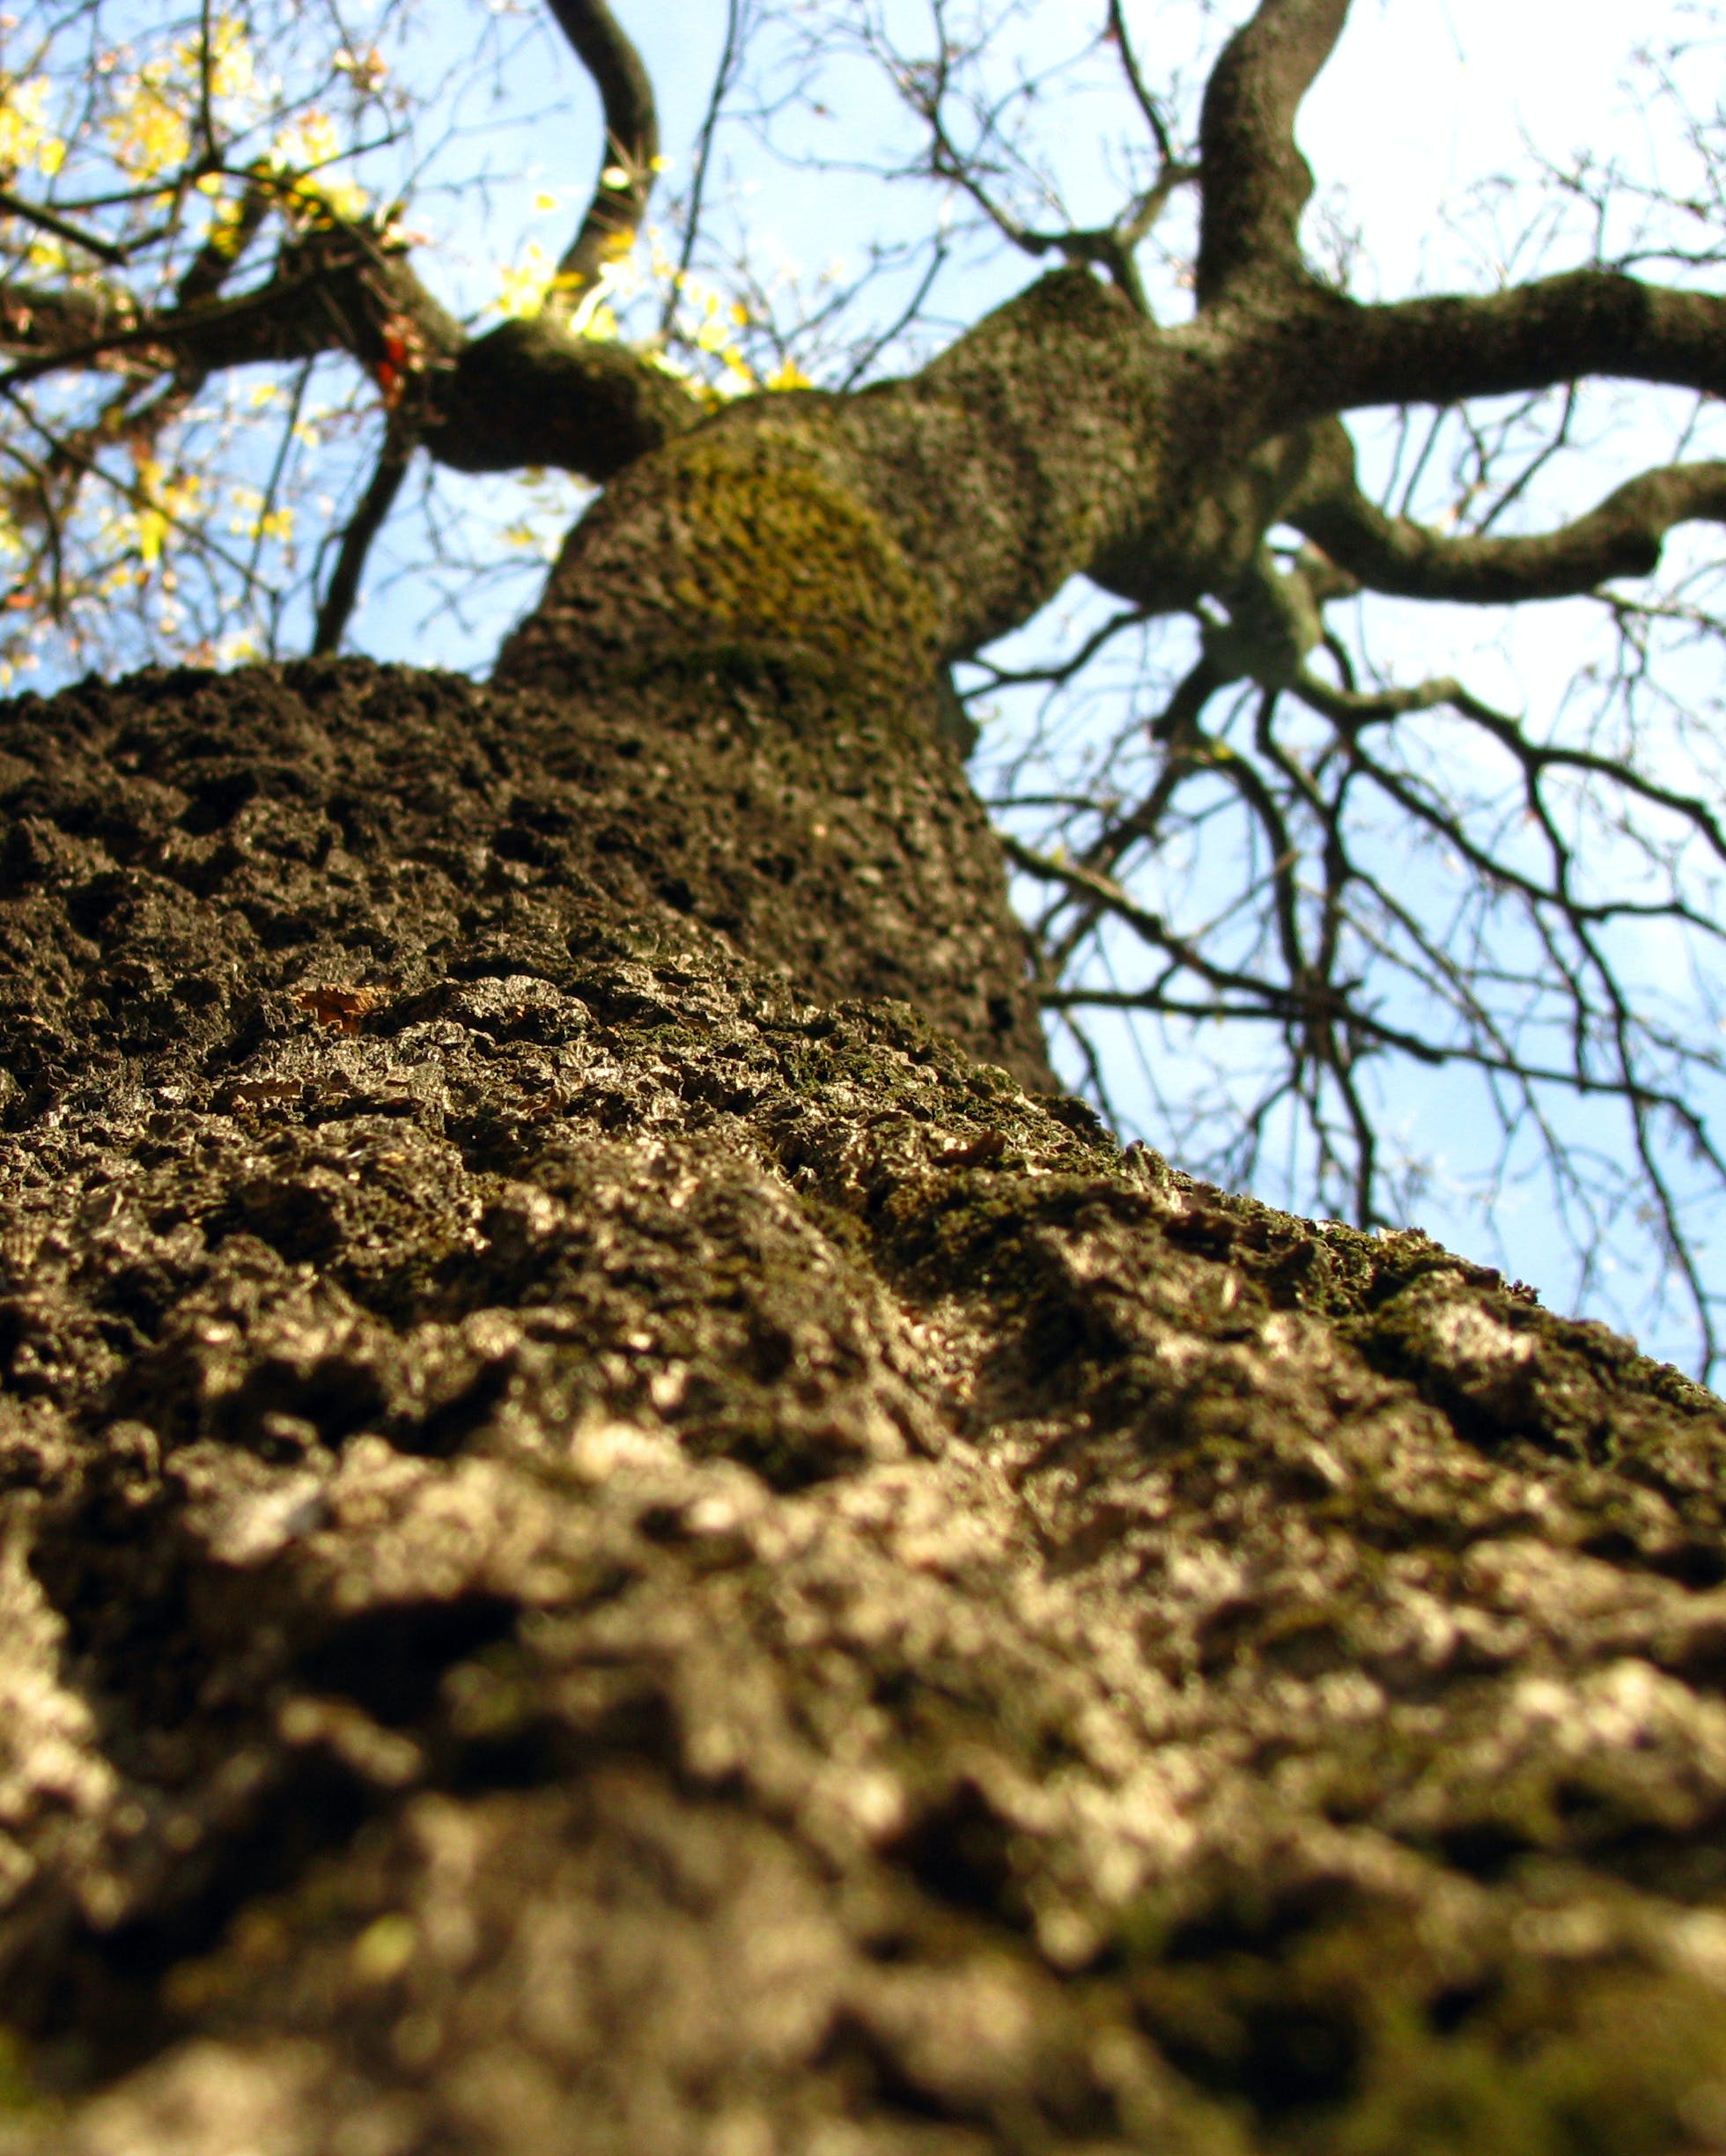 Worm's View Photography of Tree